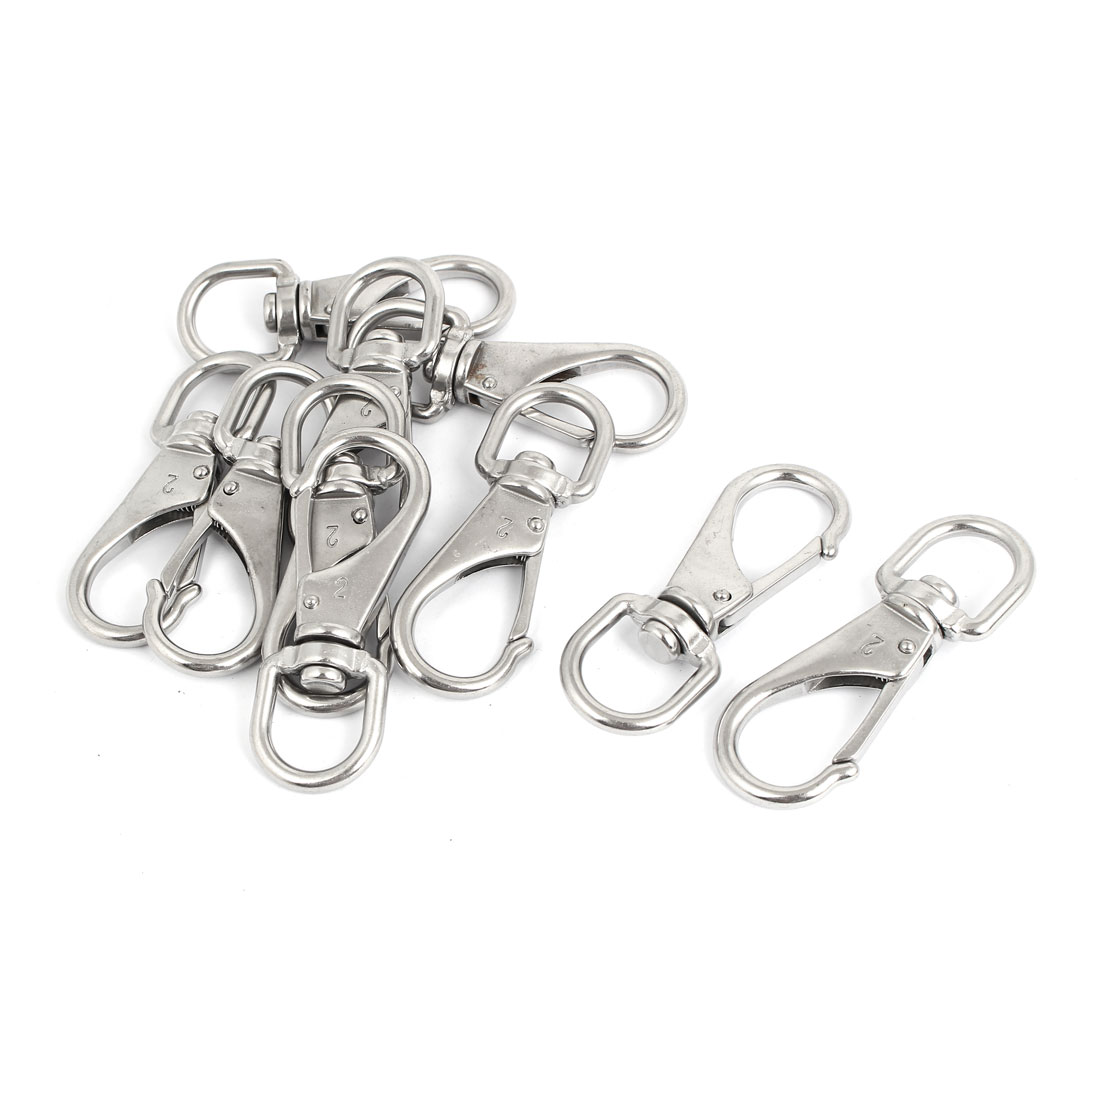 6mm Thickness Stainless Steel Swivel Eye Lobster Snap Clasp Hook 10 Pcs